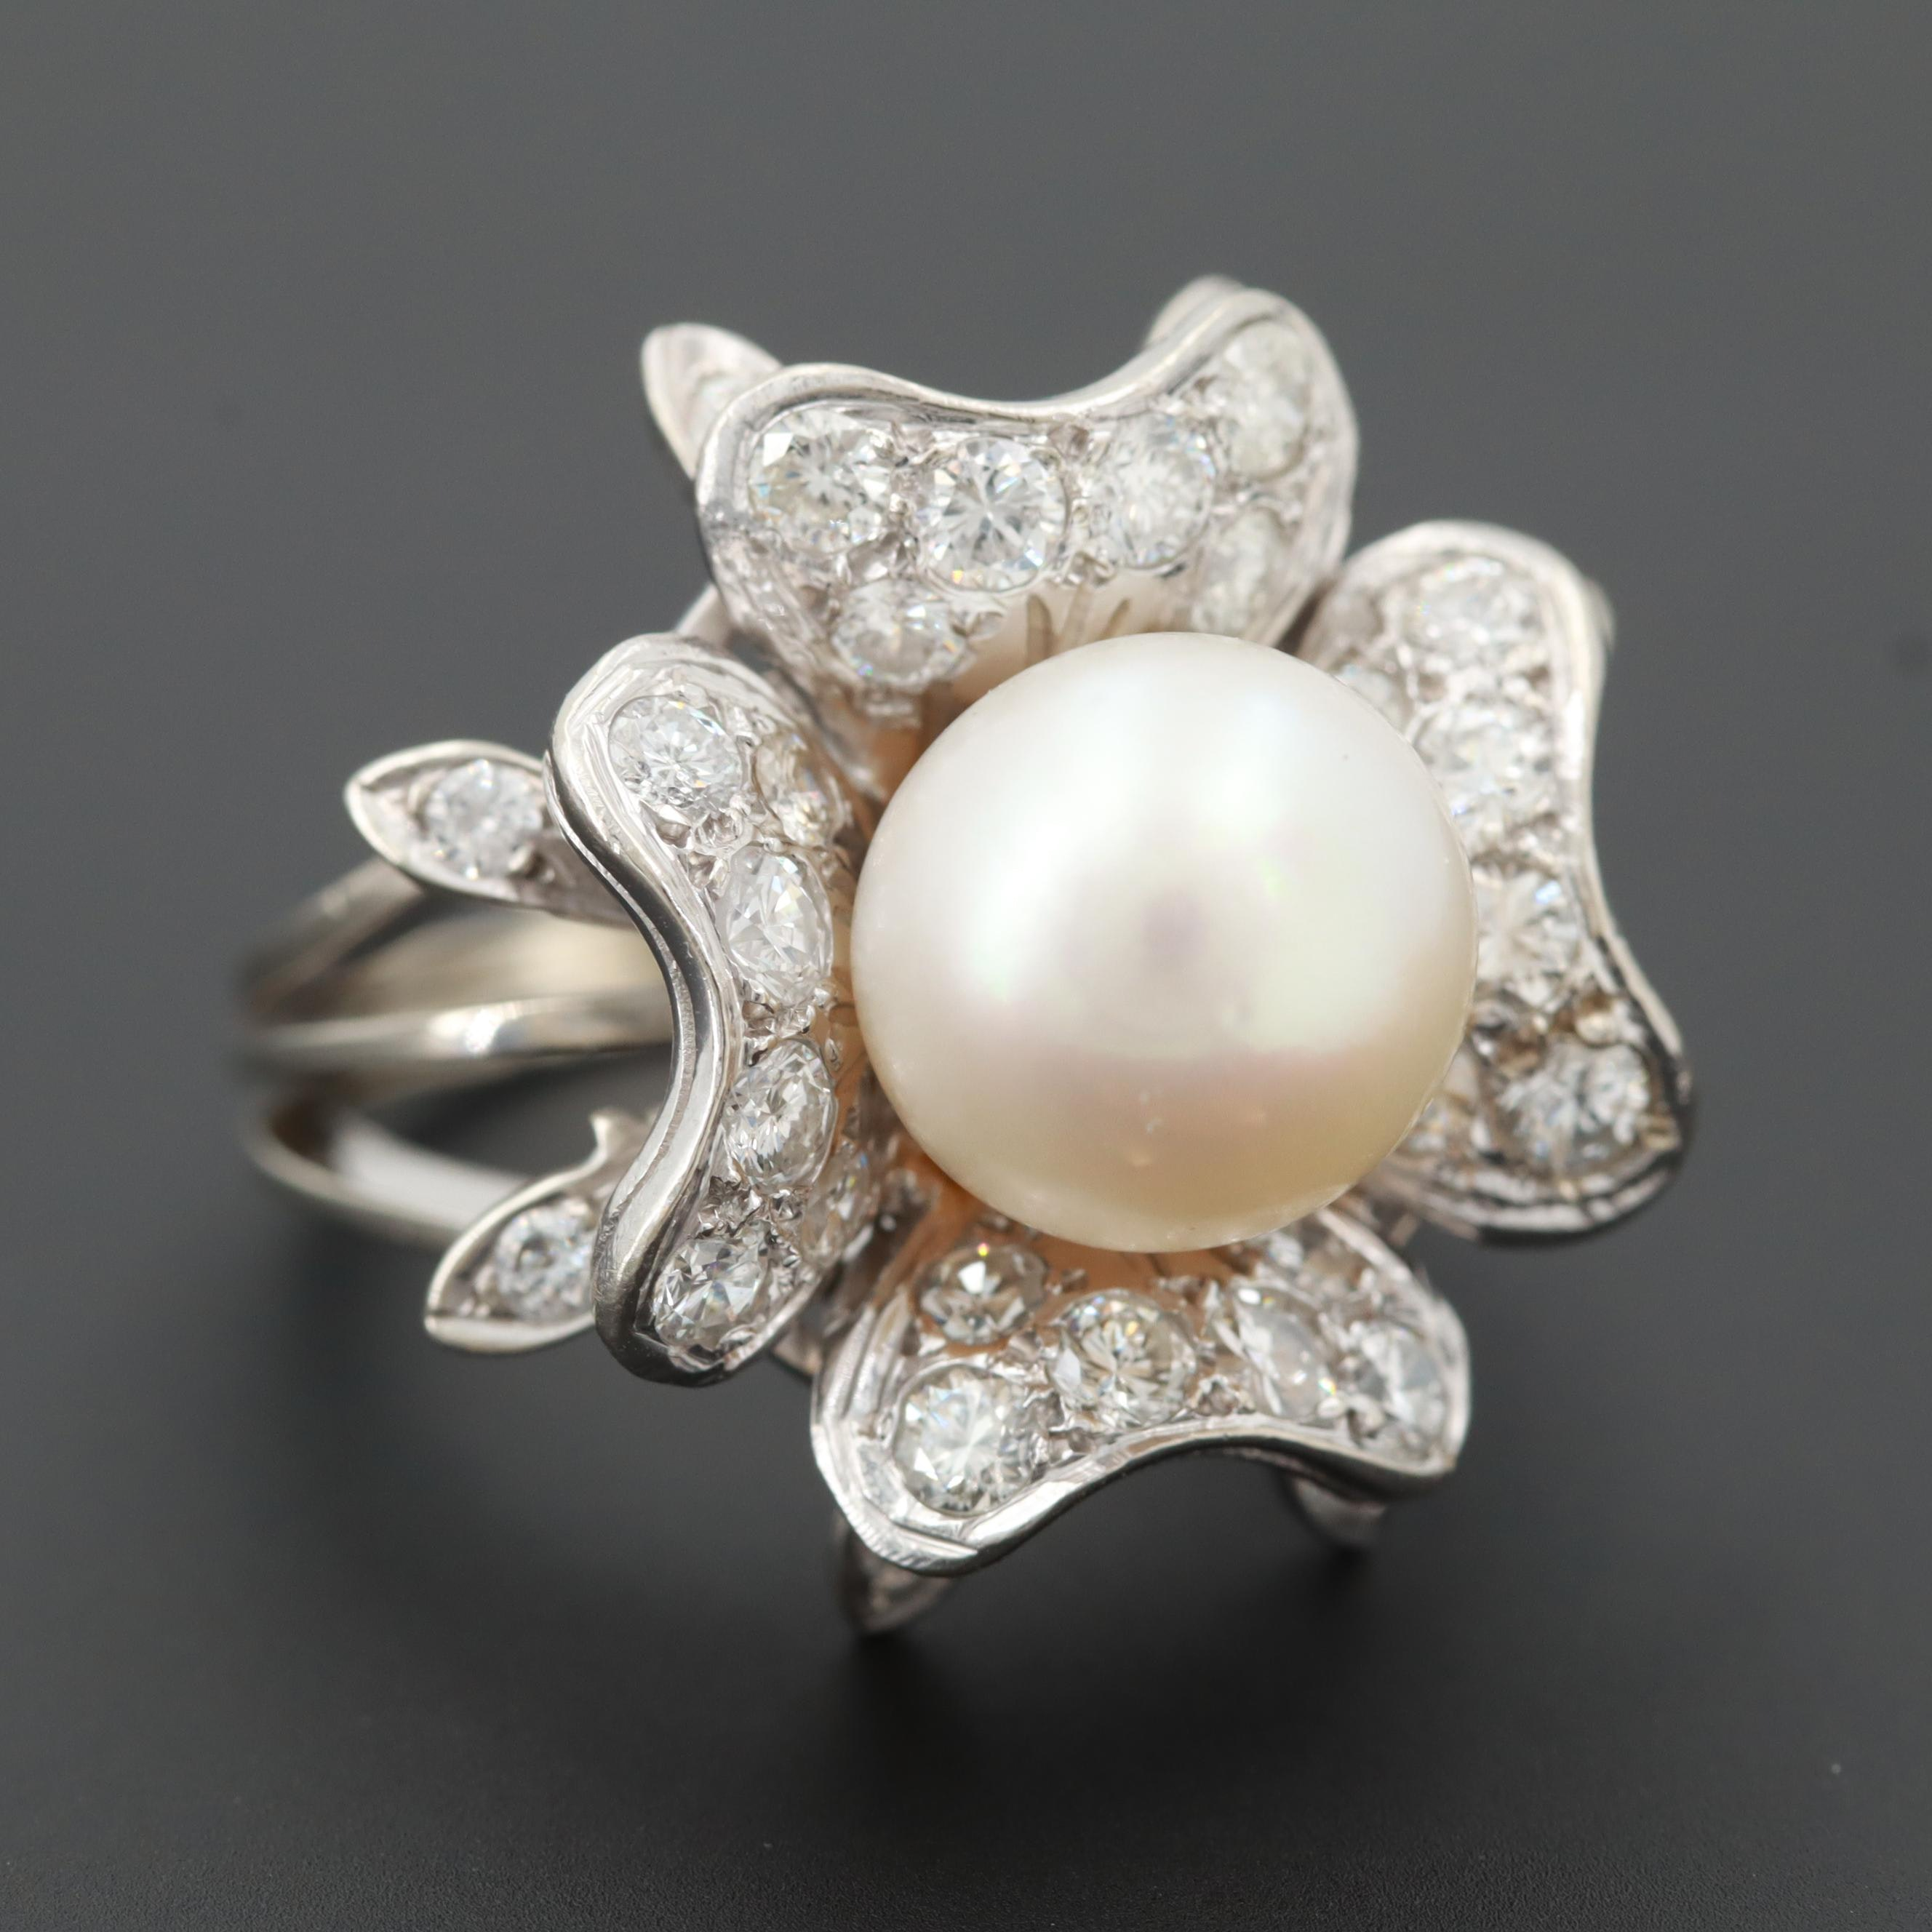 Vintage 14K White Gold Cultured Pearl and 1.36 CTW Diamond Flower Ring